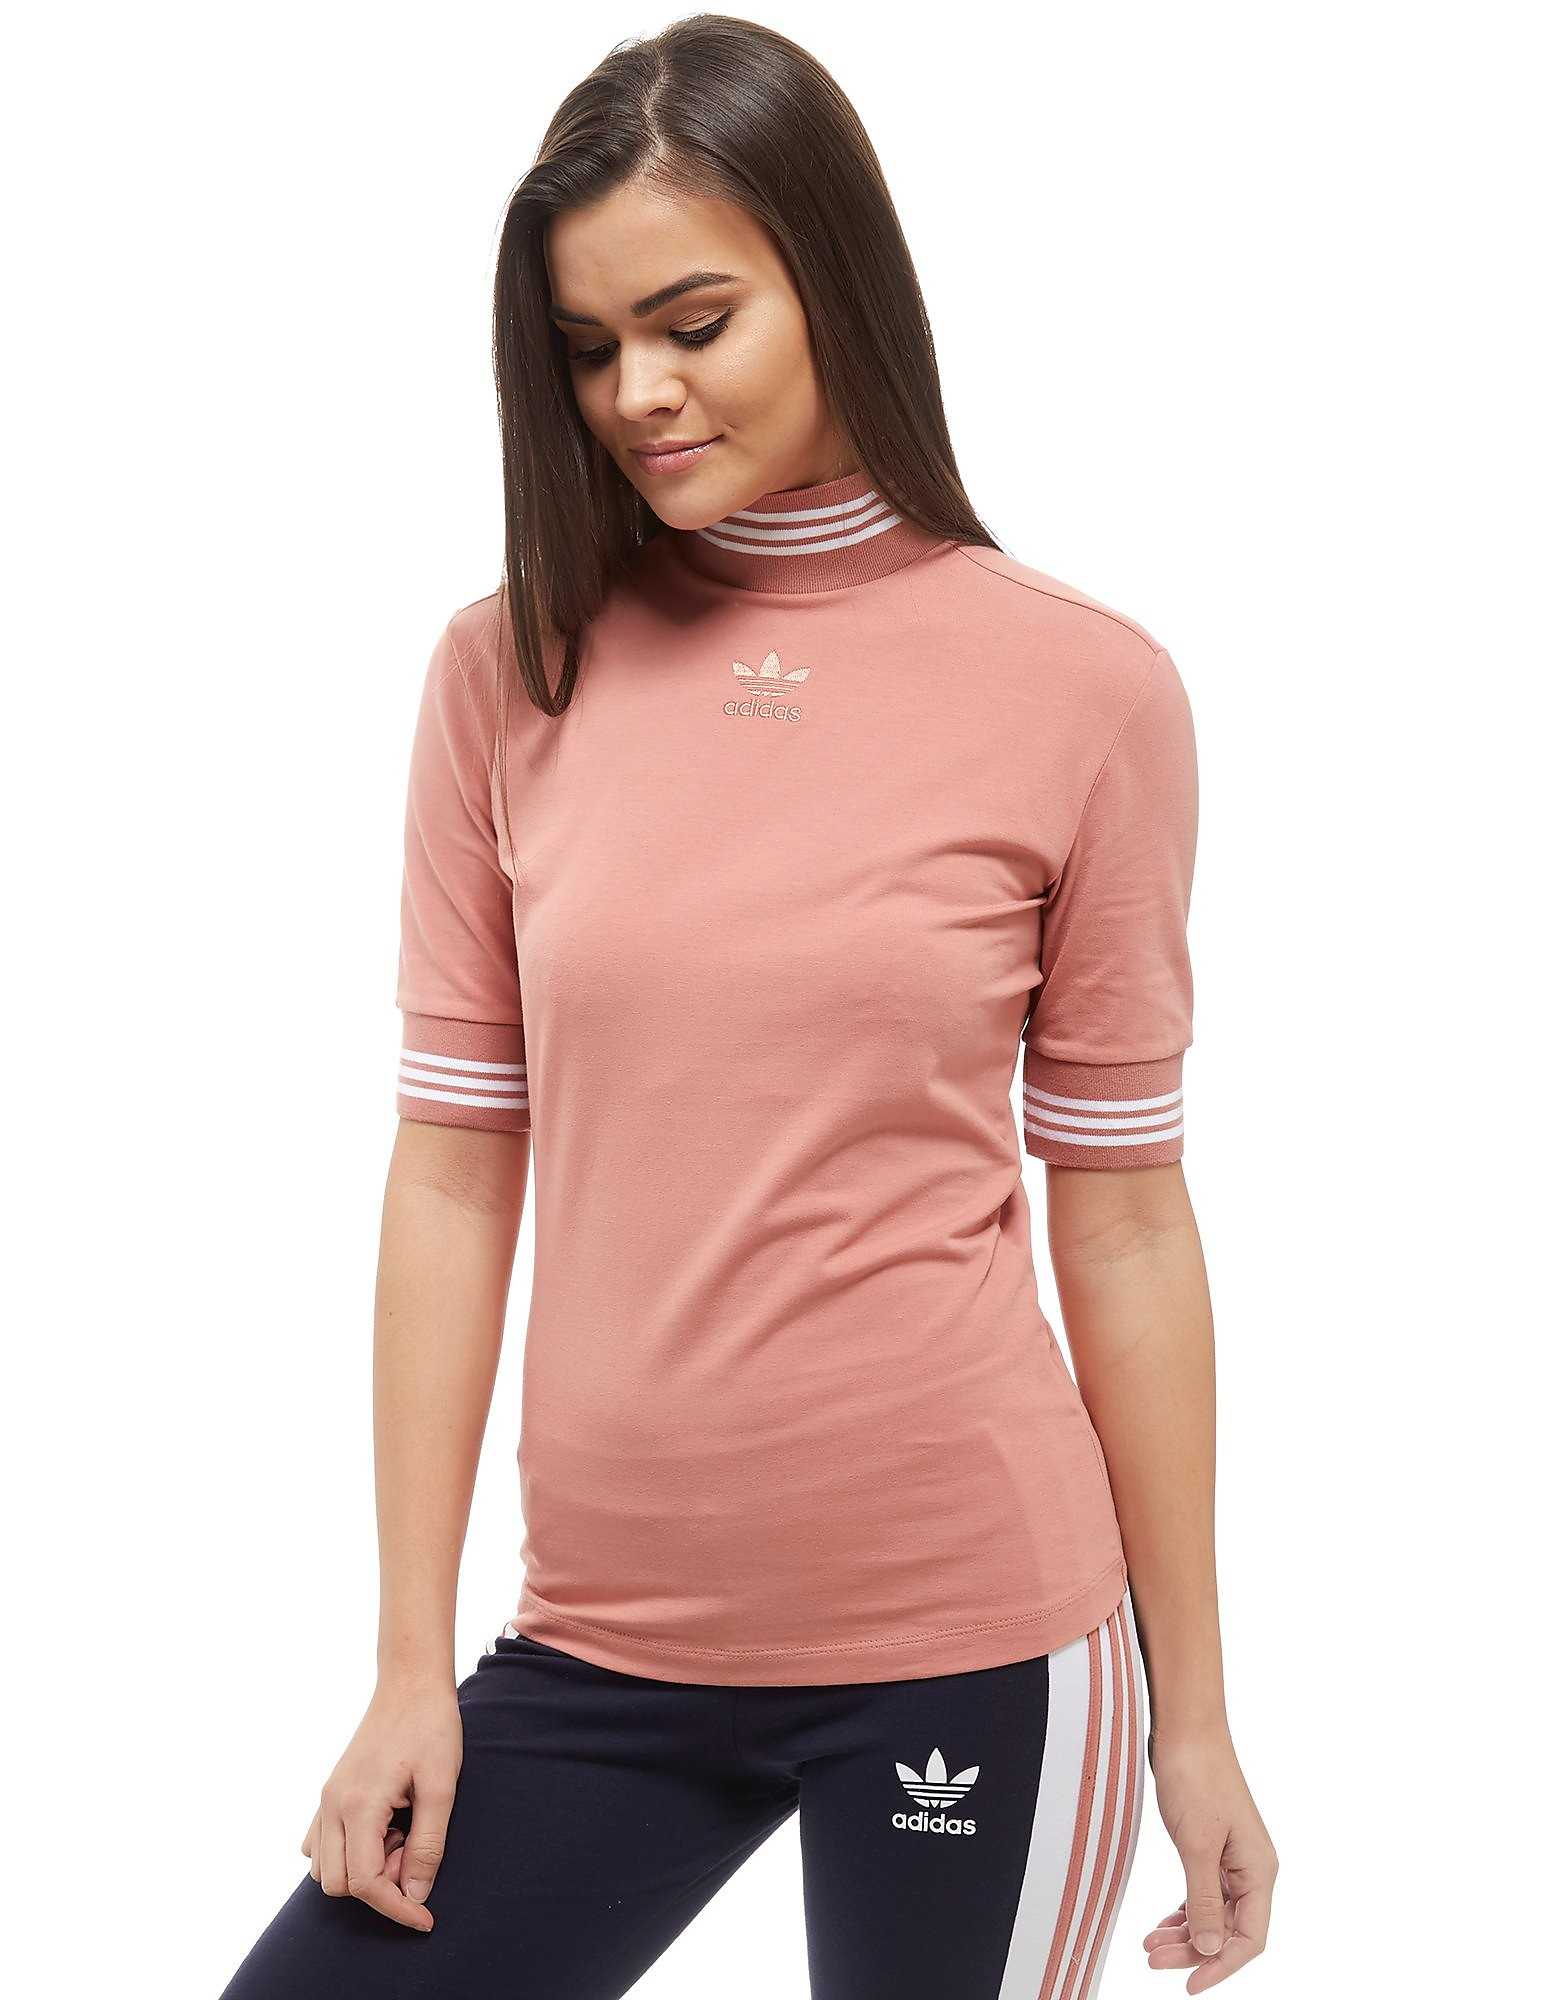 adidas Originals High Neck T-Shirt